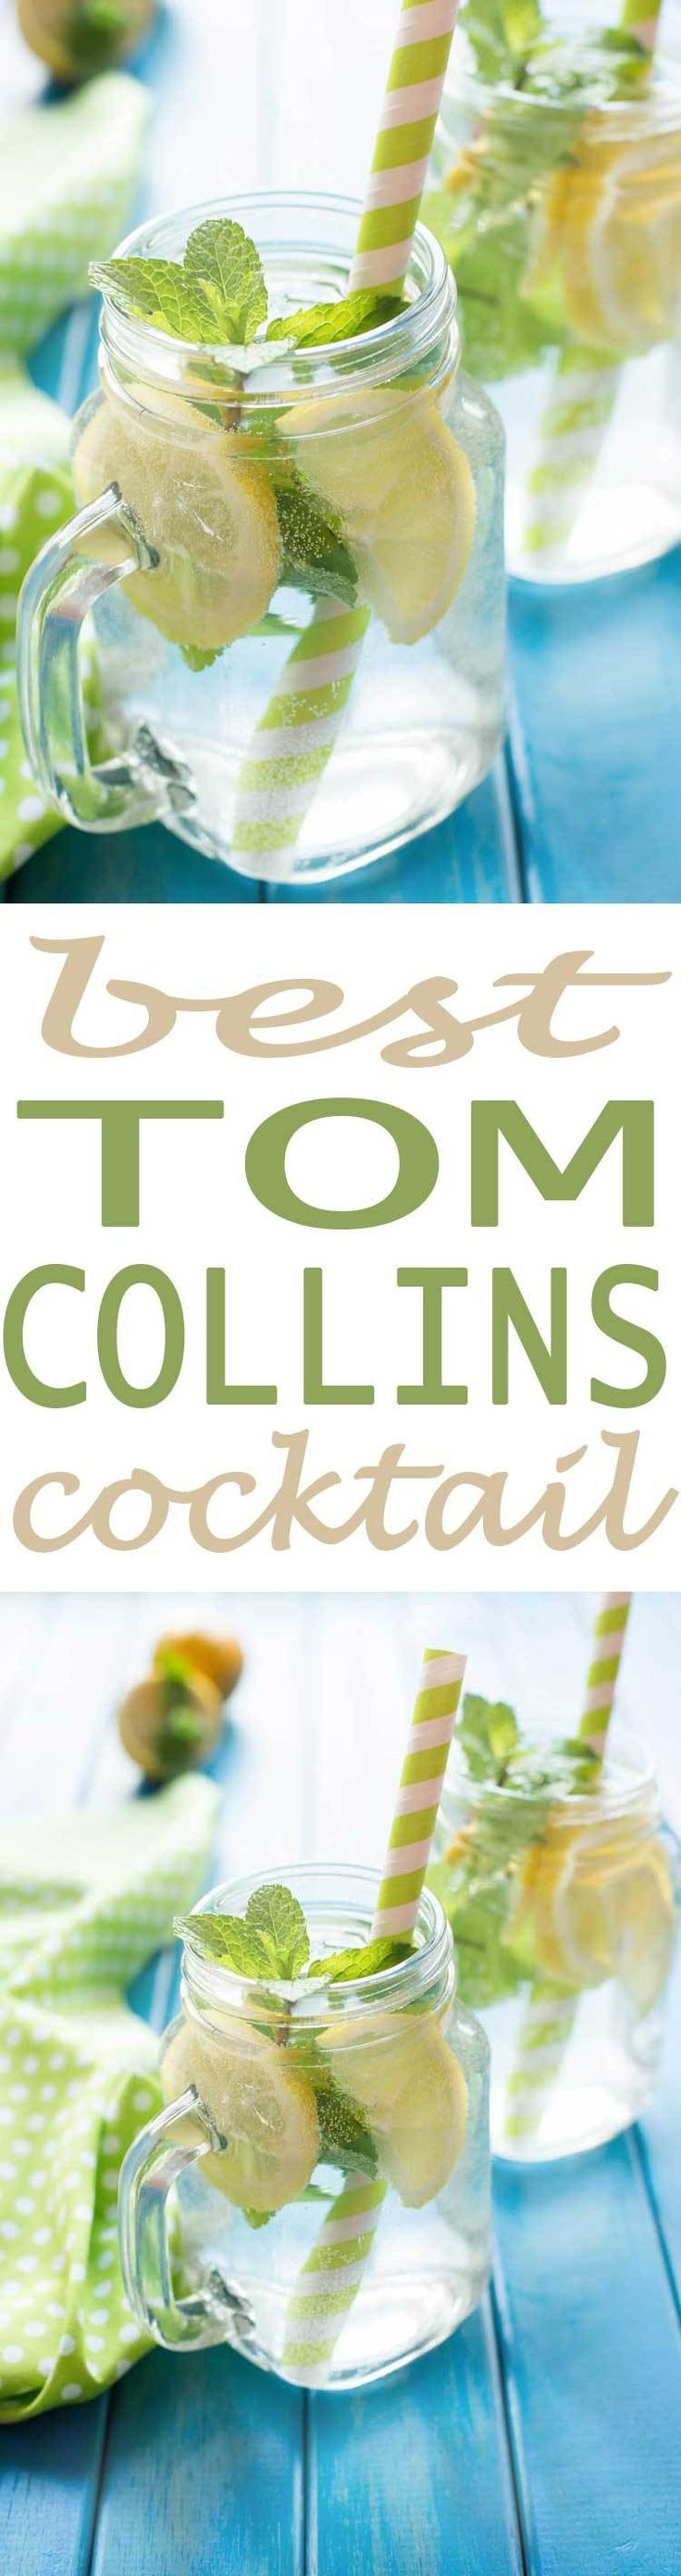 Tom Collins Cocktail is a fun and simple adult beverage recipe with a sweet flavor and a little kick. Great for your next pool or backyard party.